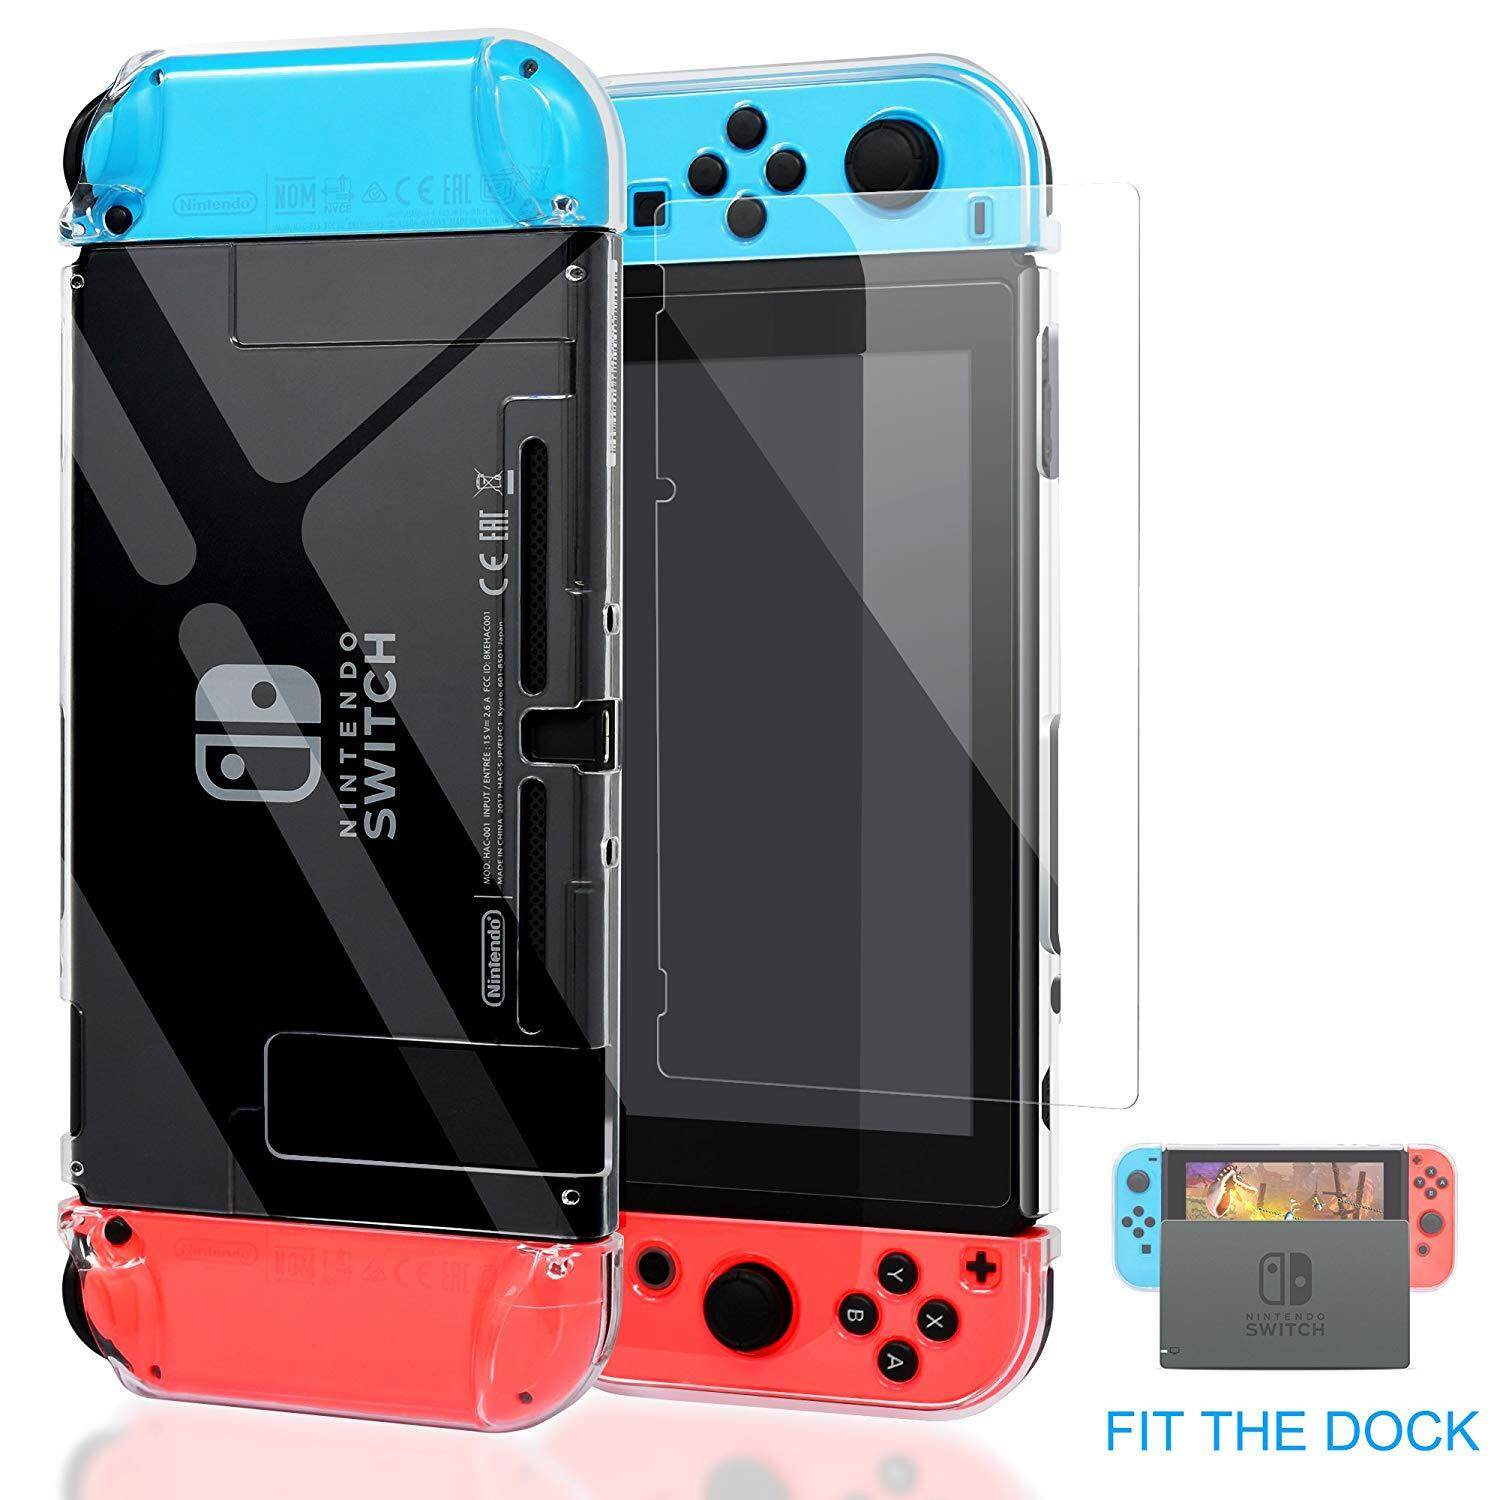 Nintendo Cases Covers Buy At Best Price Switch Carrying Case Screen Protector Official Fit The Dock Stationprotective Accessories Cover For